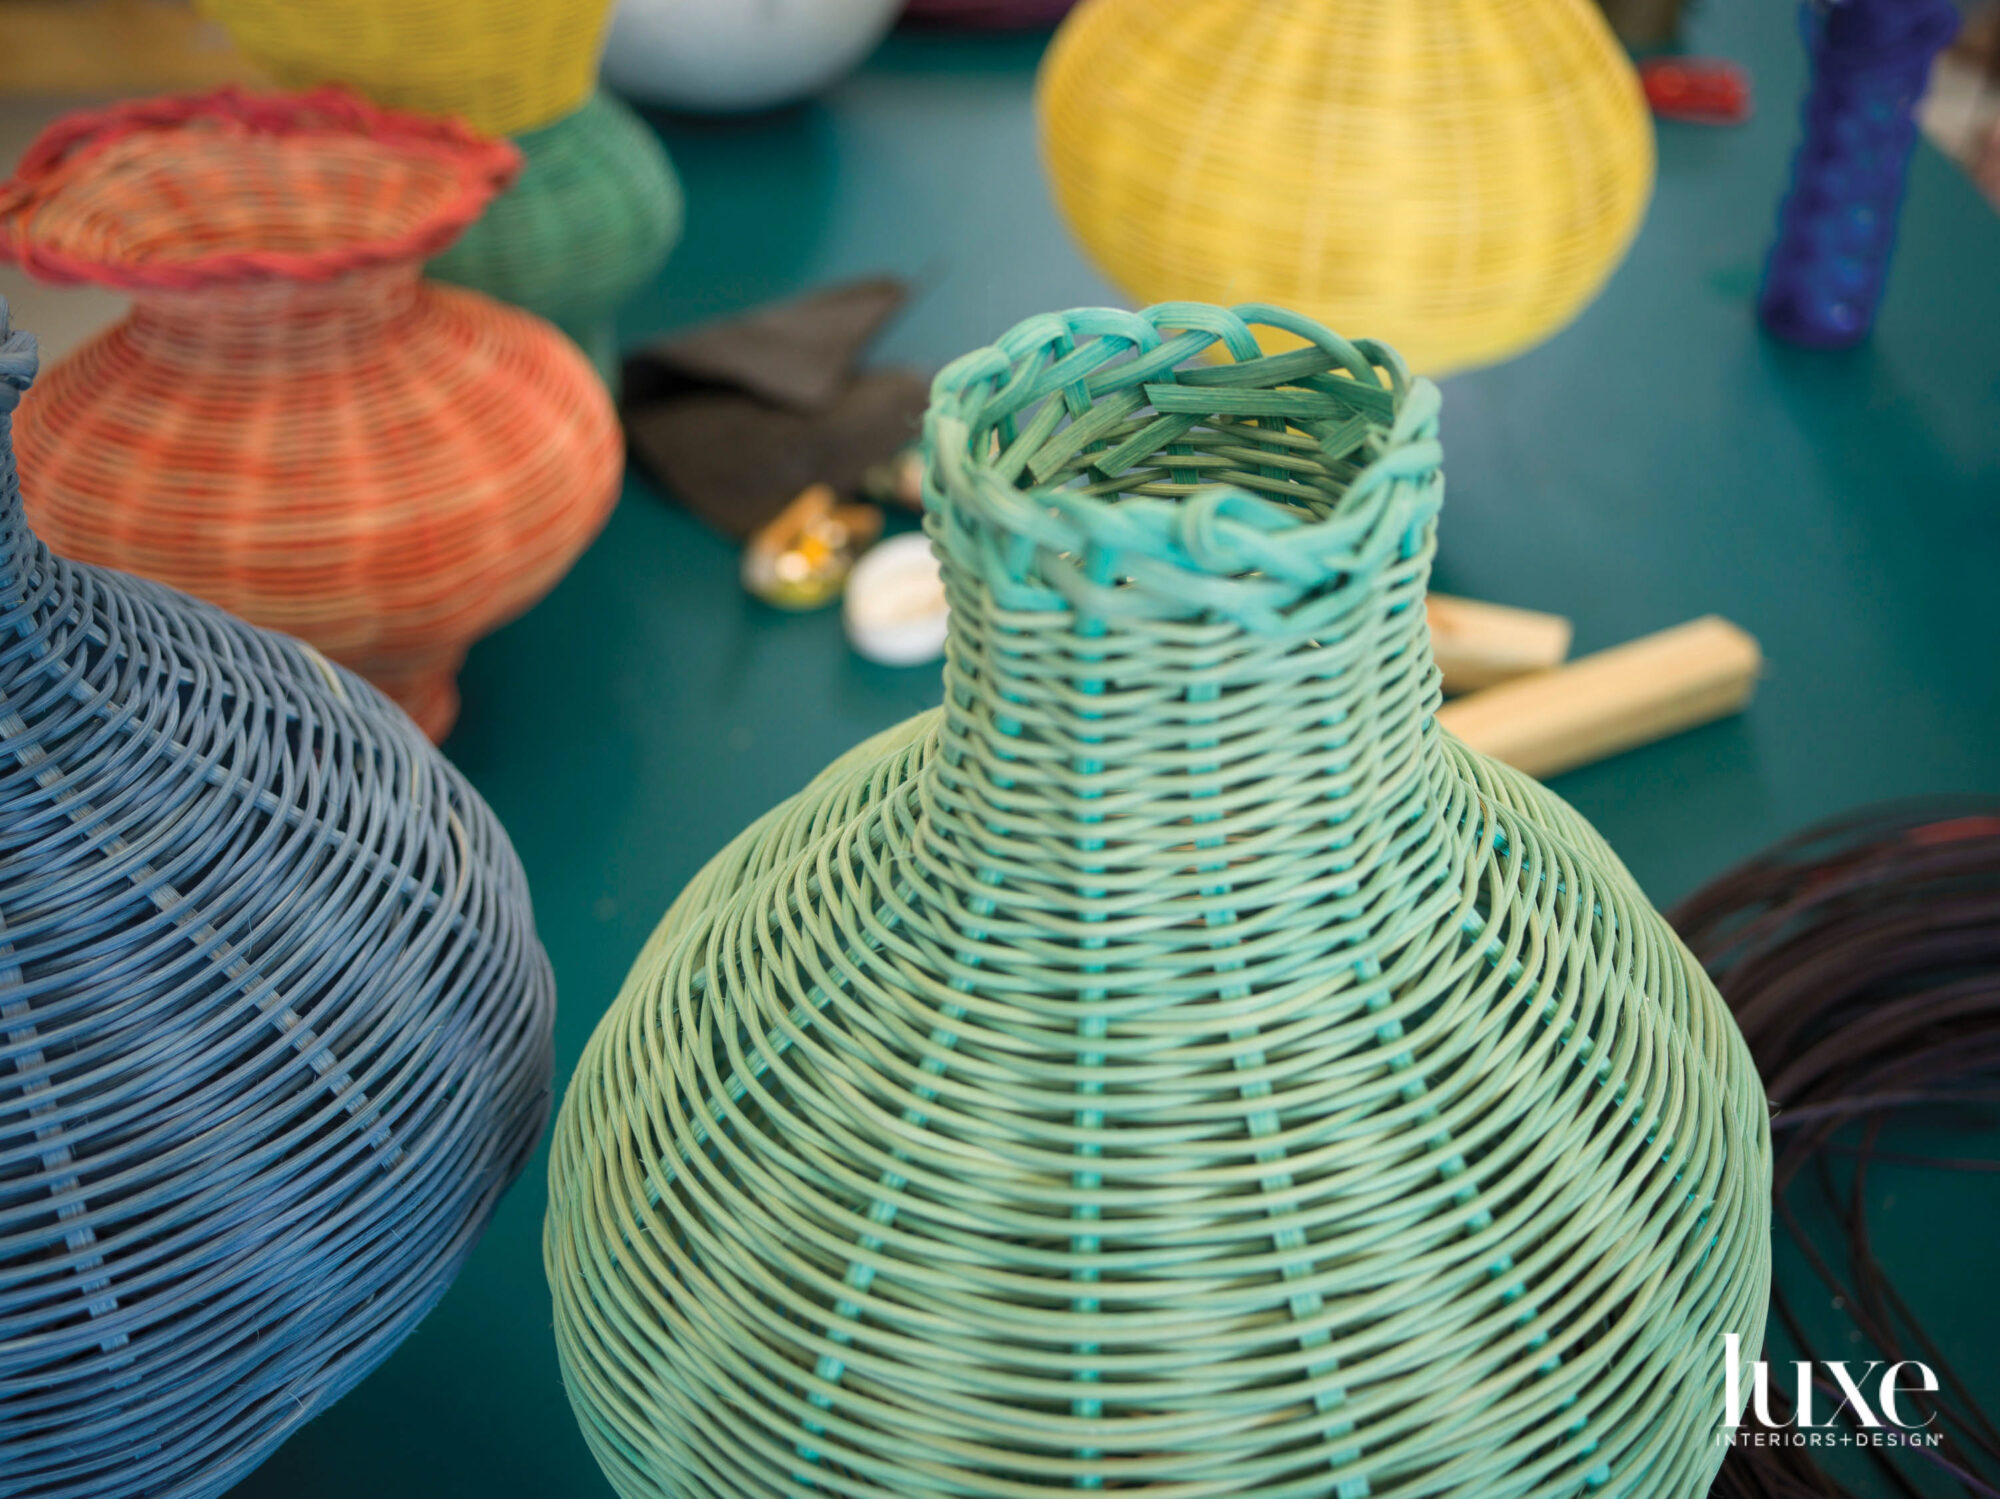 Blue and green woven baskets with orange and yellow ones in the background.